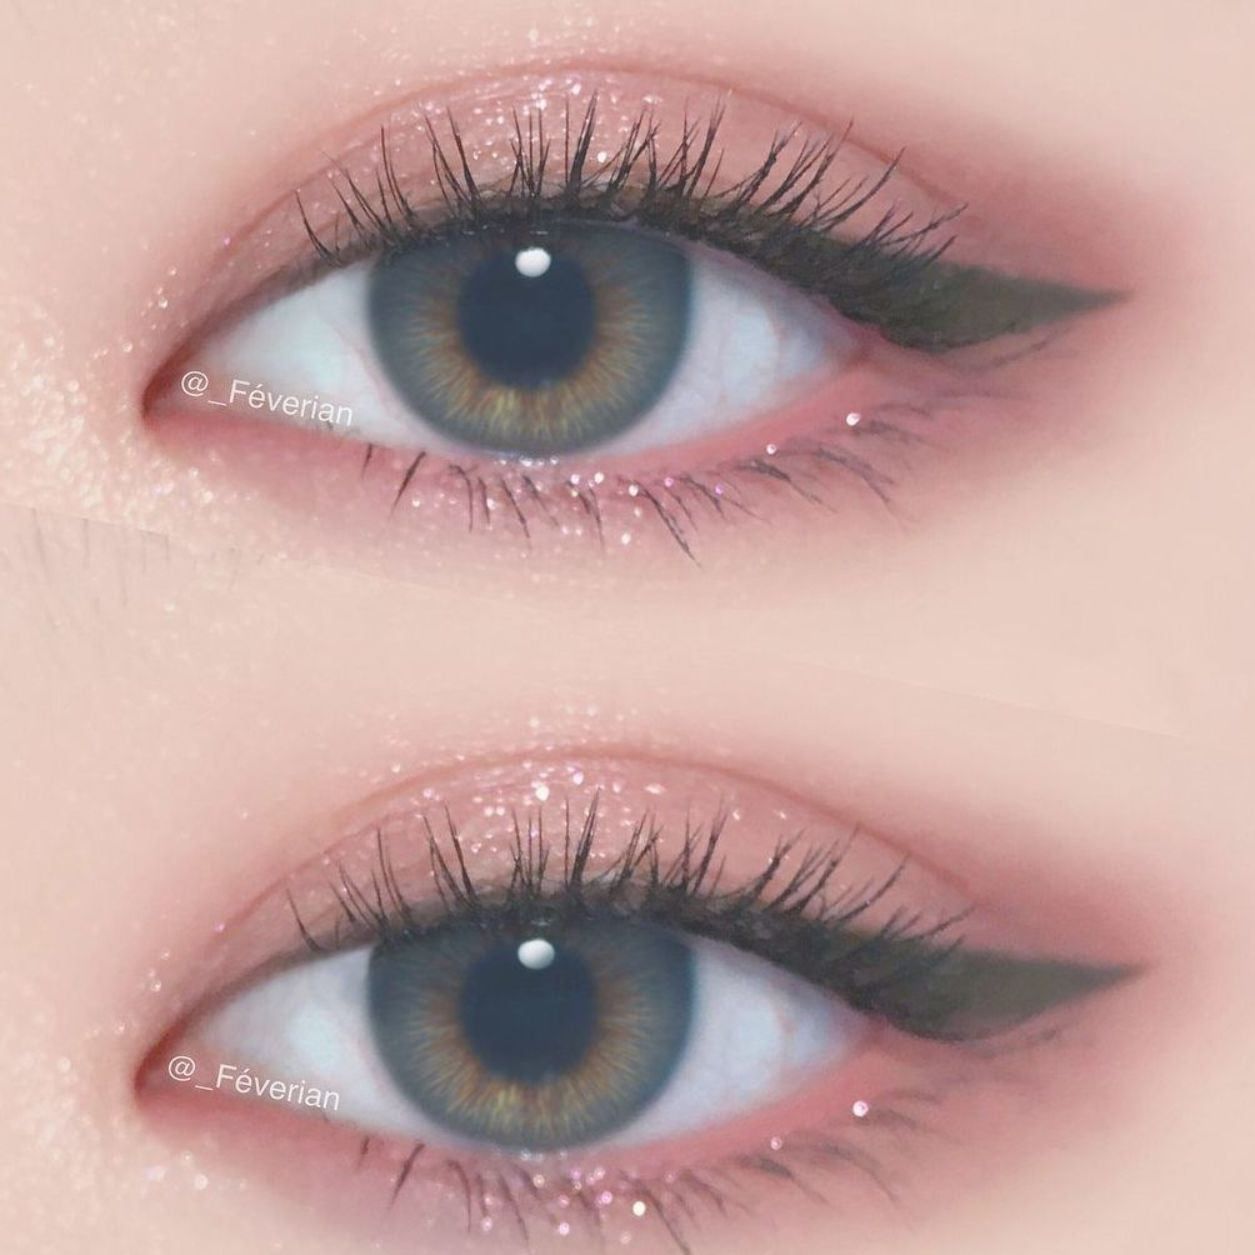 shimmery pink eye makeup w/ winged liner @_feverian